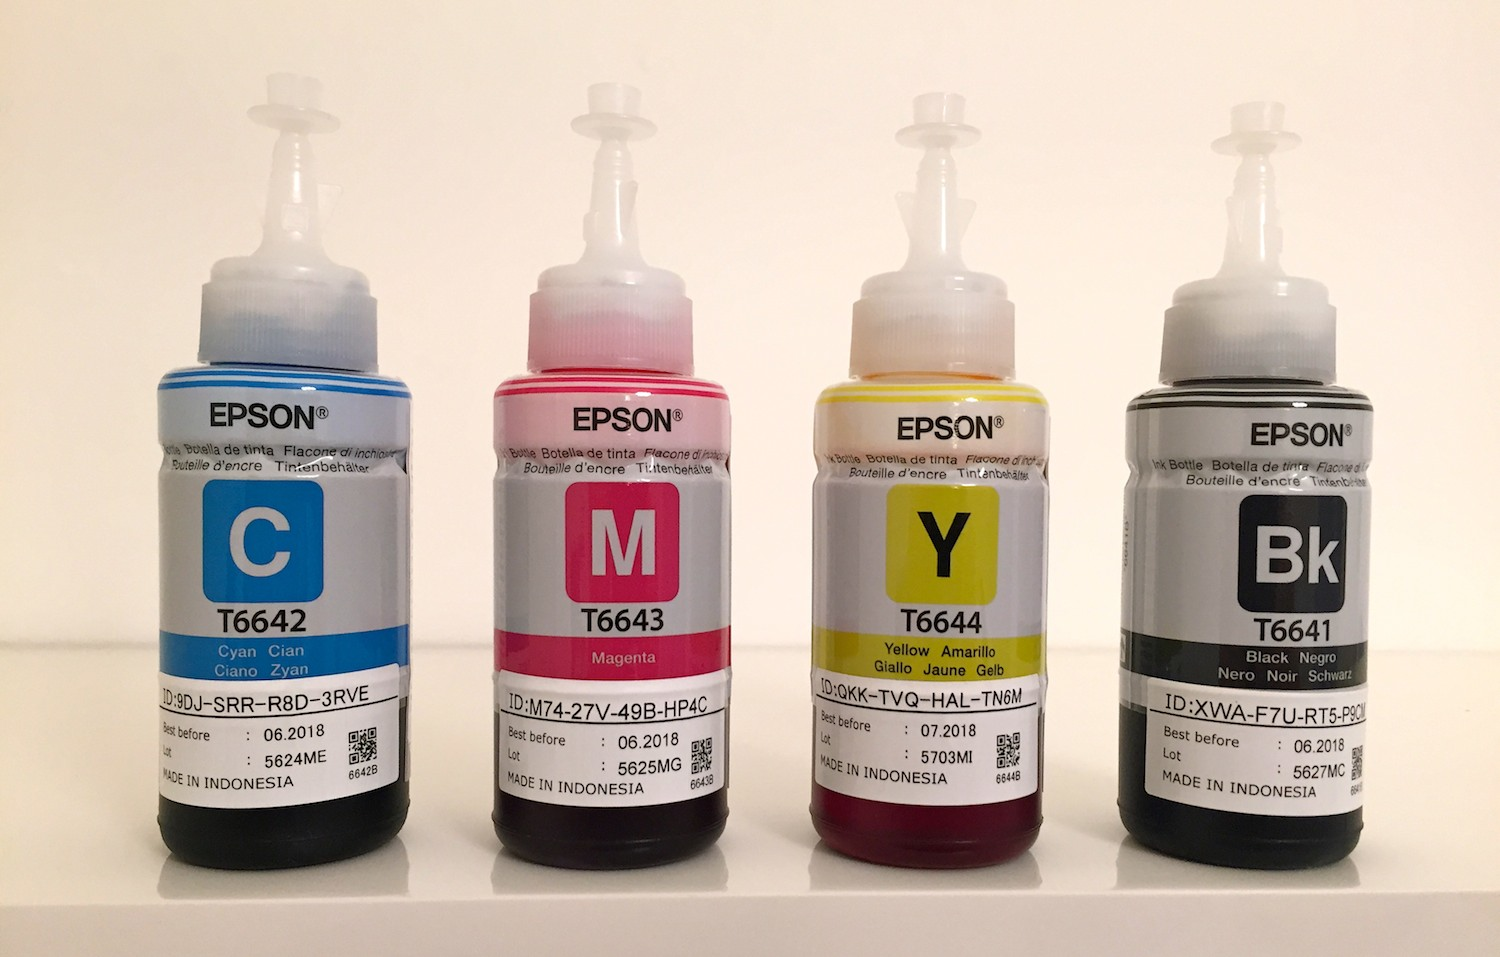 Epson EcoTank ink bottles